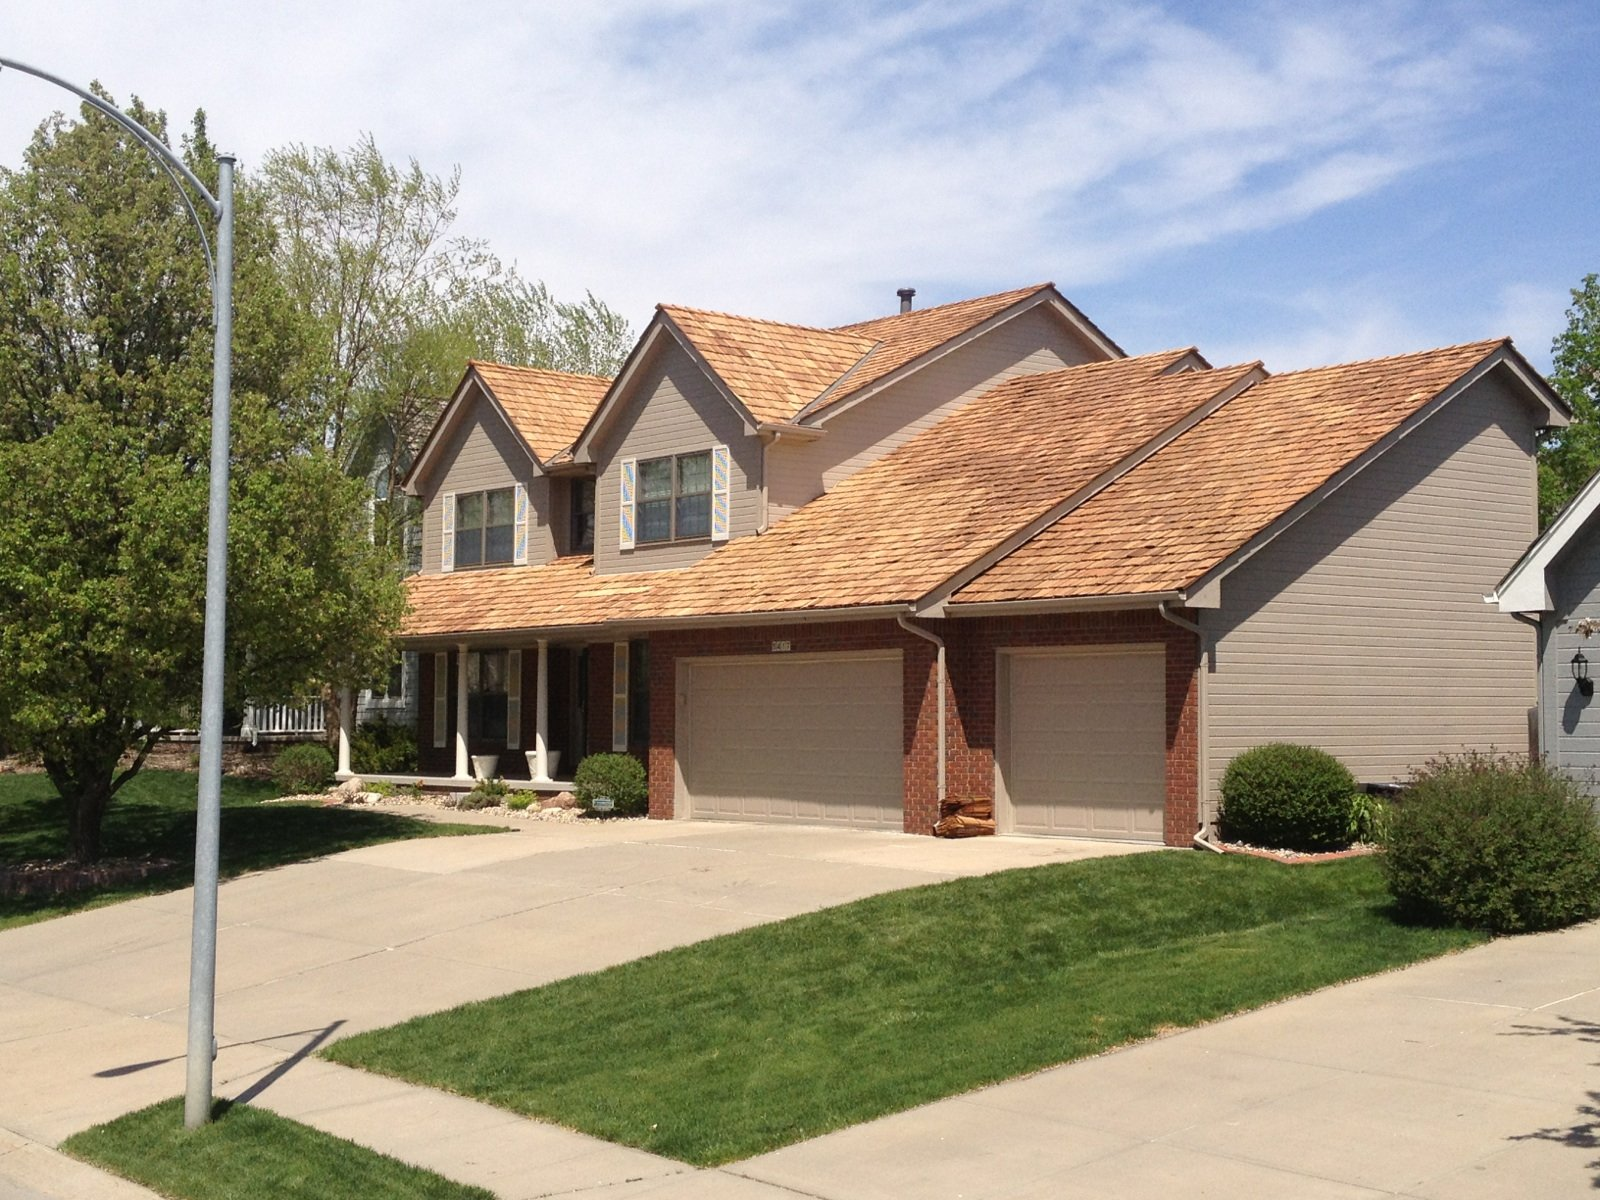 Why ChooseExterior Remodel and Design Roofing?